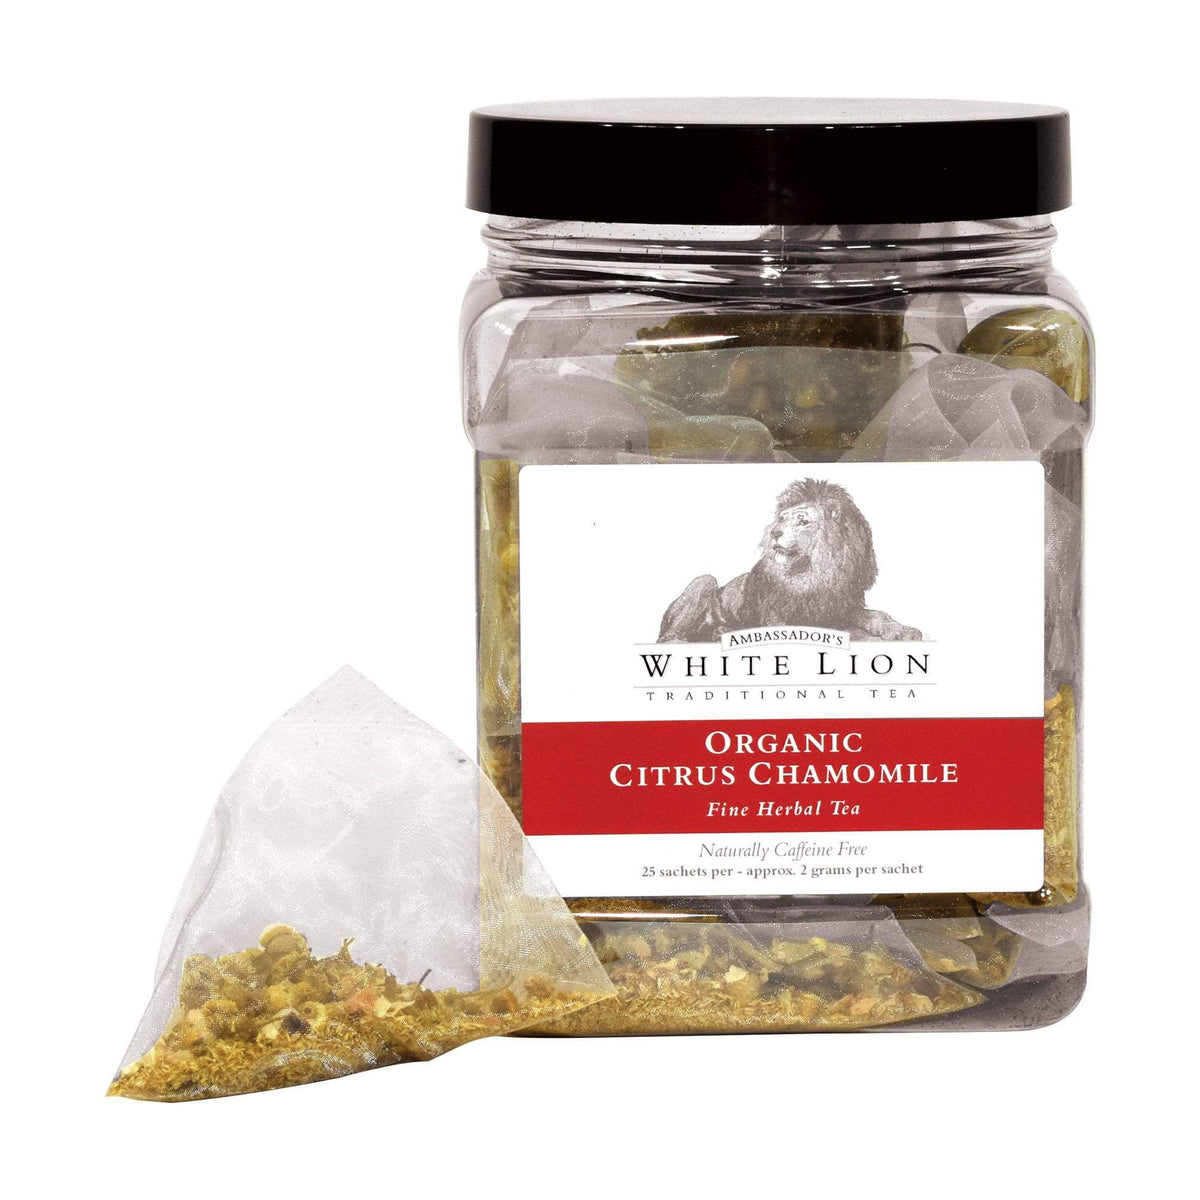 White Lion Organic Citrus Chamomile Tea